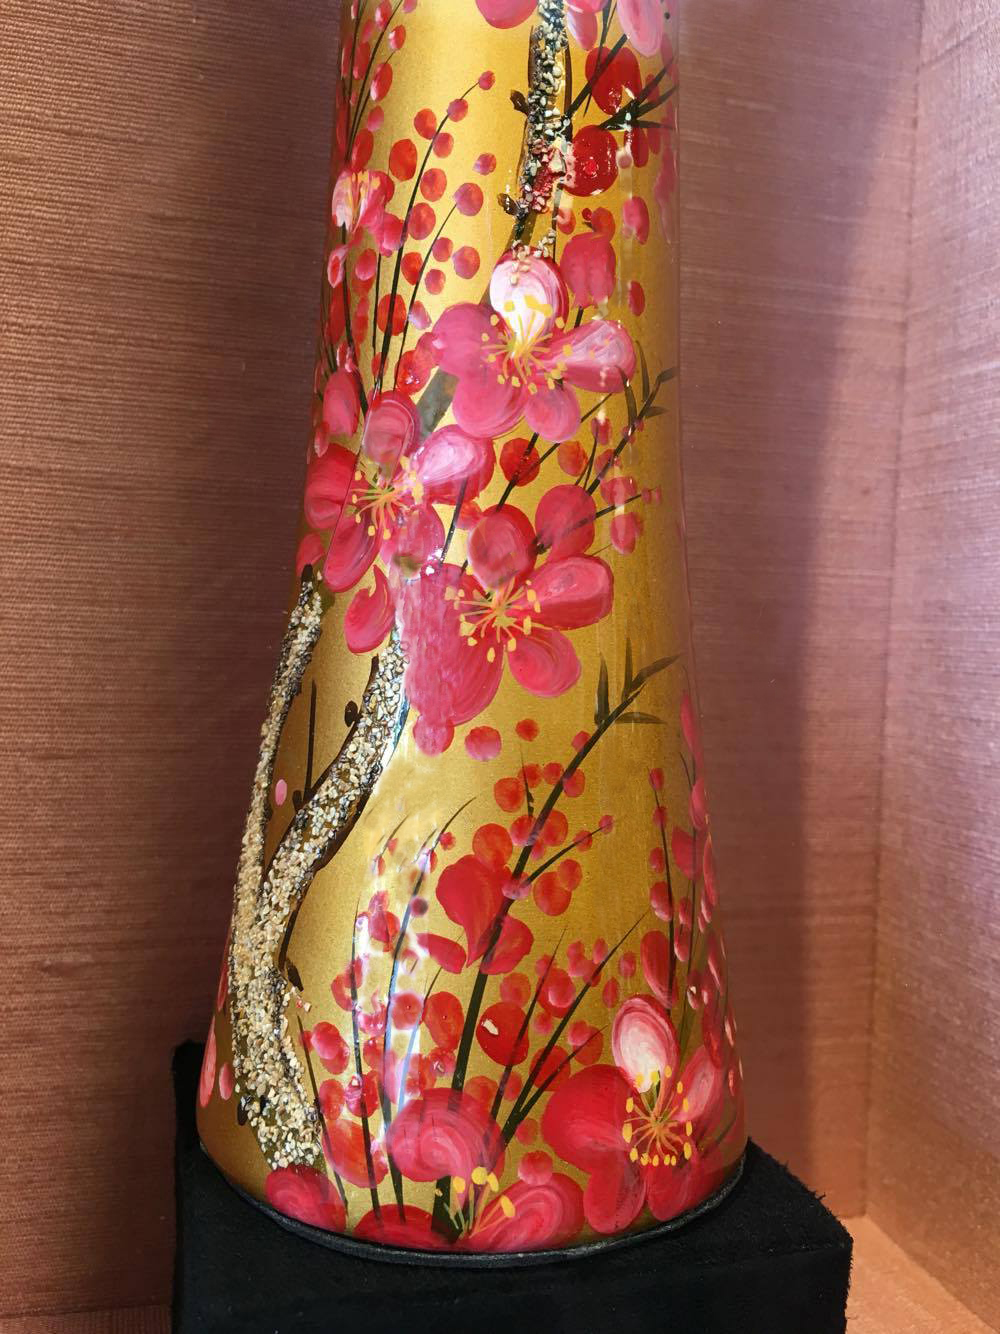 A close up of the vase's detail against the silk fabric.